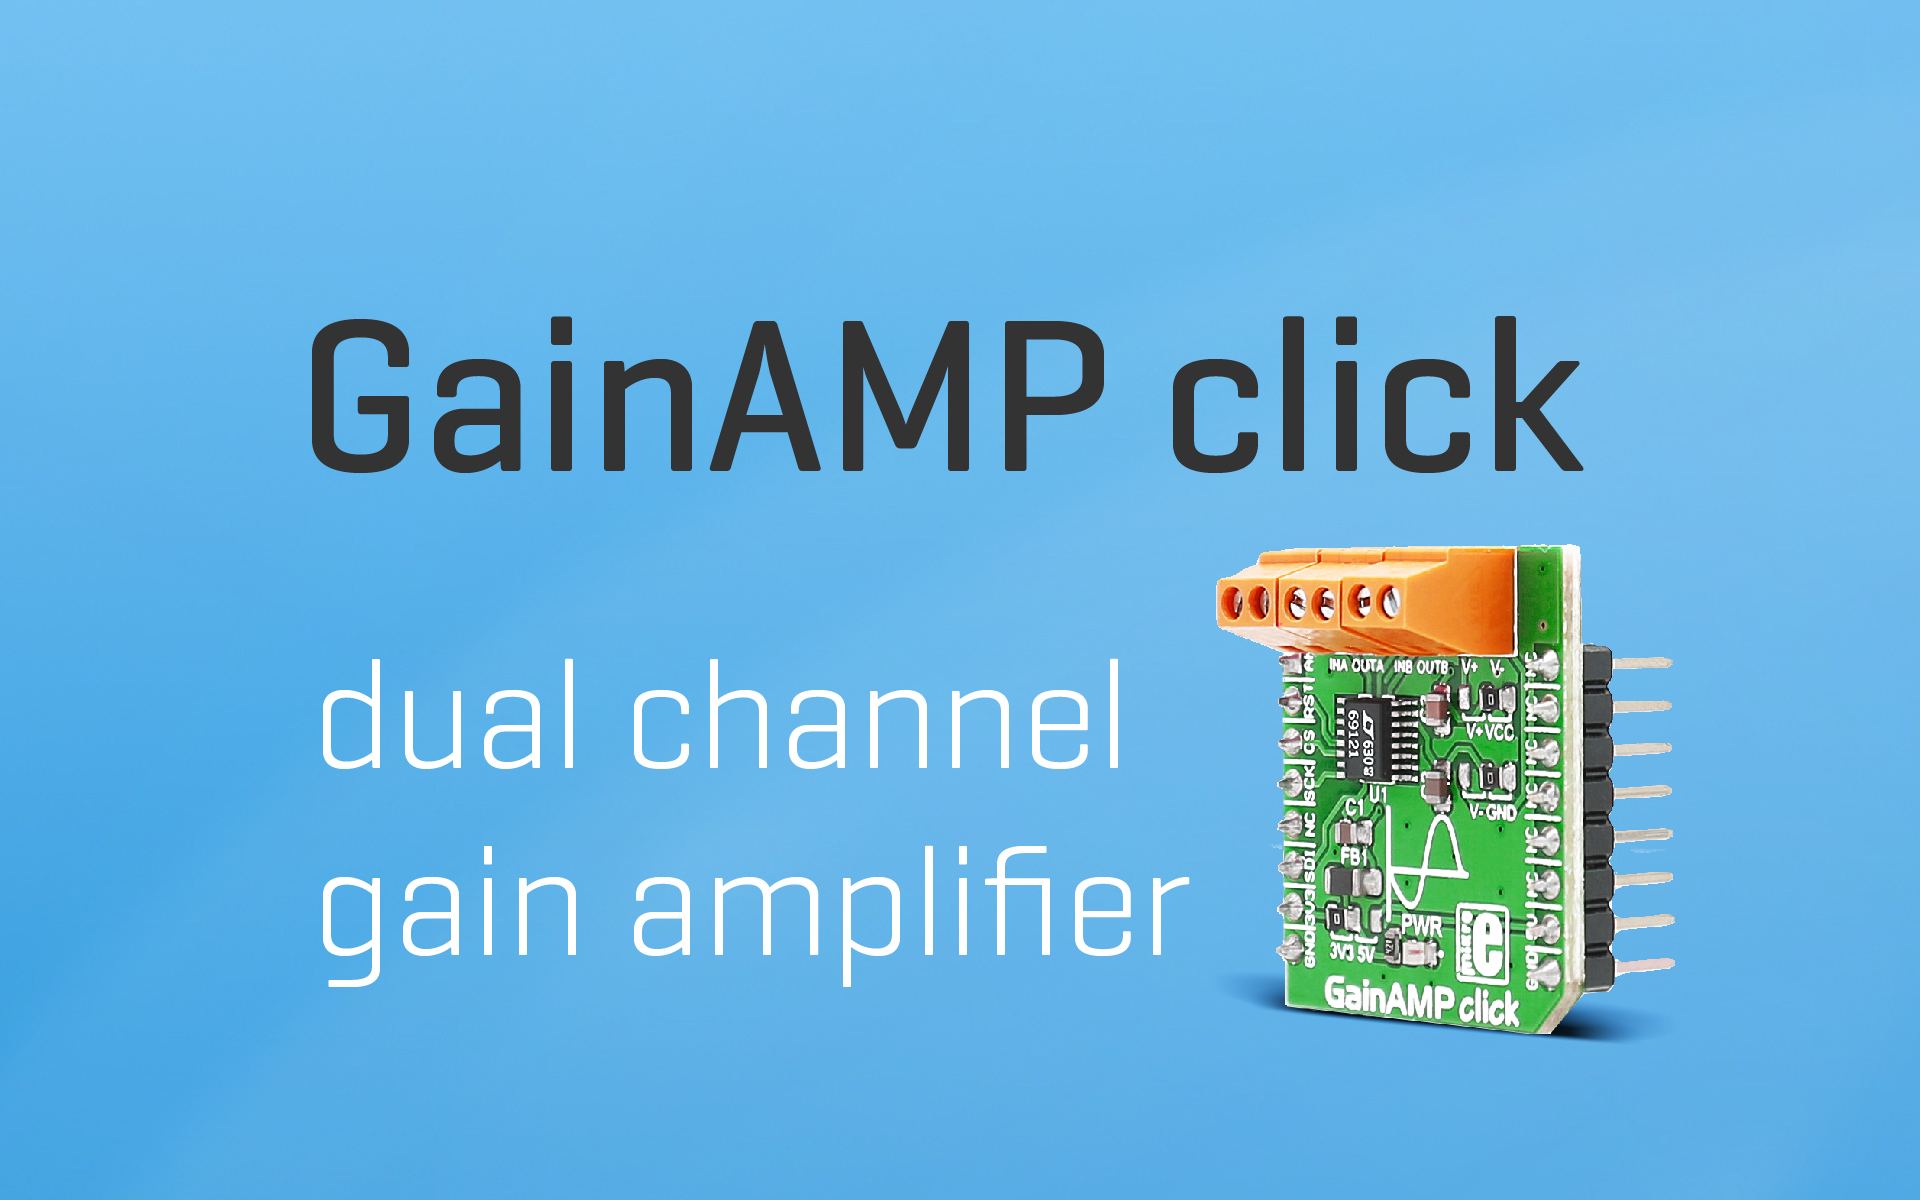 GainAMP click — dual channel gain amplifier